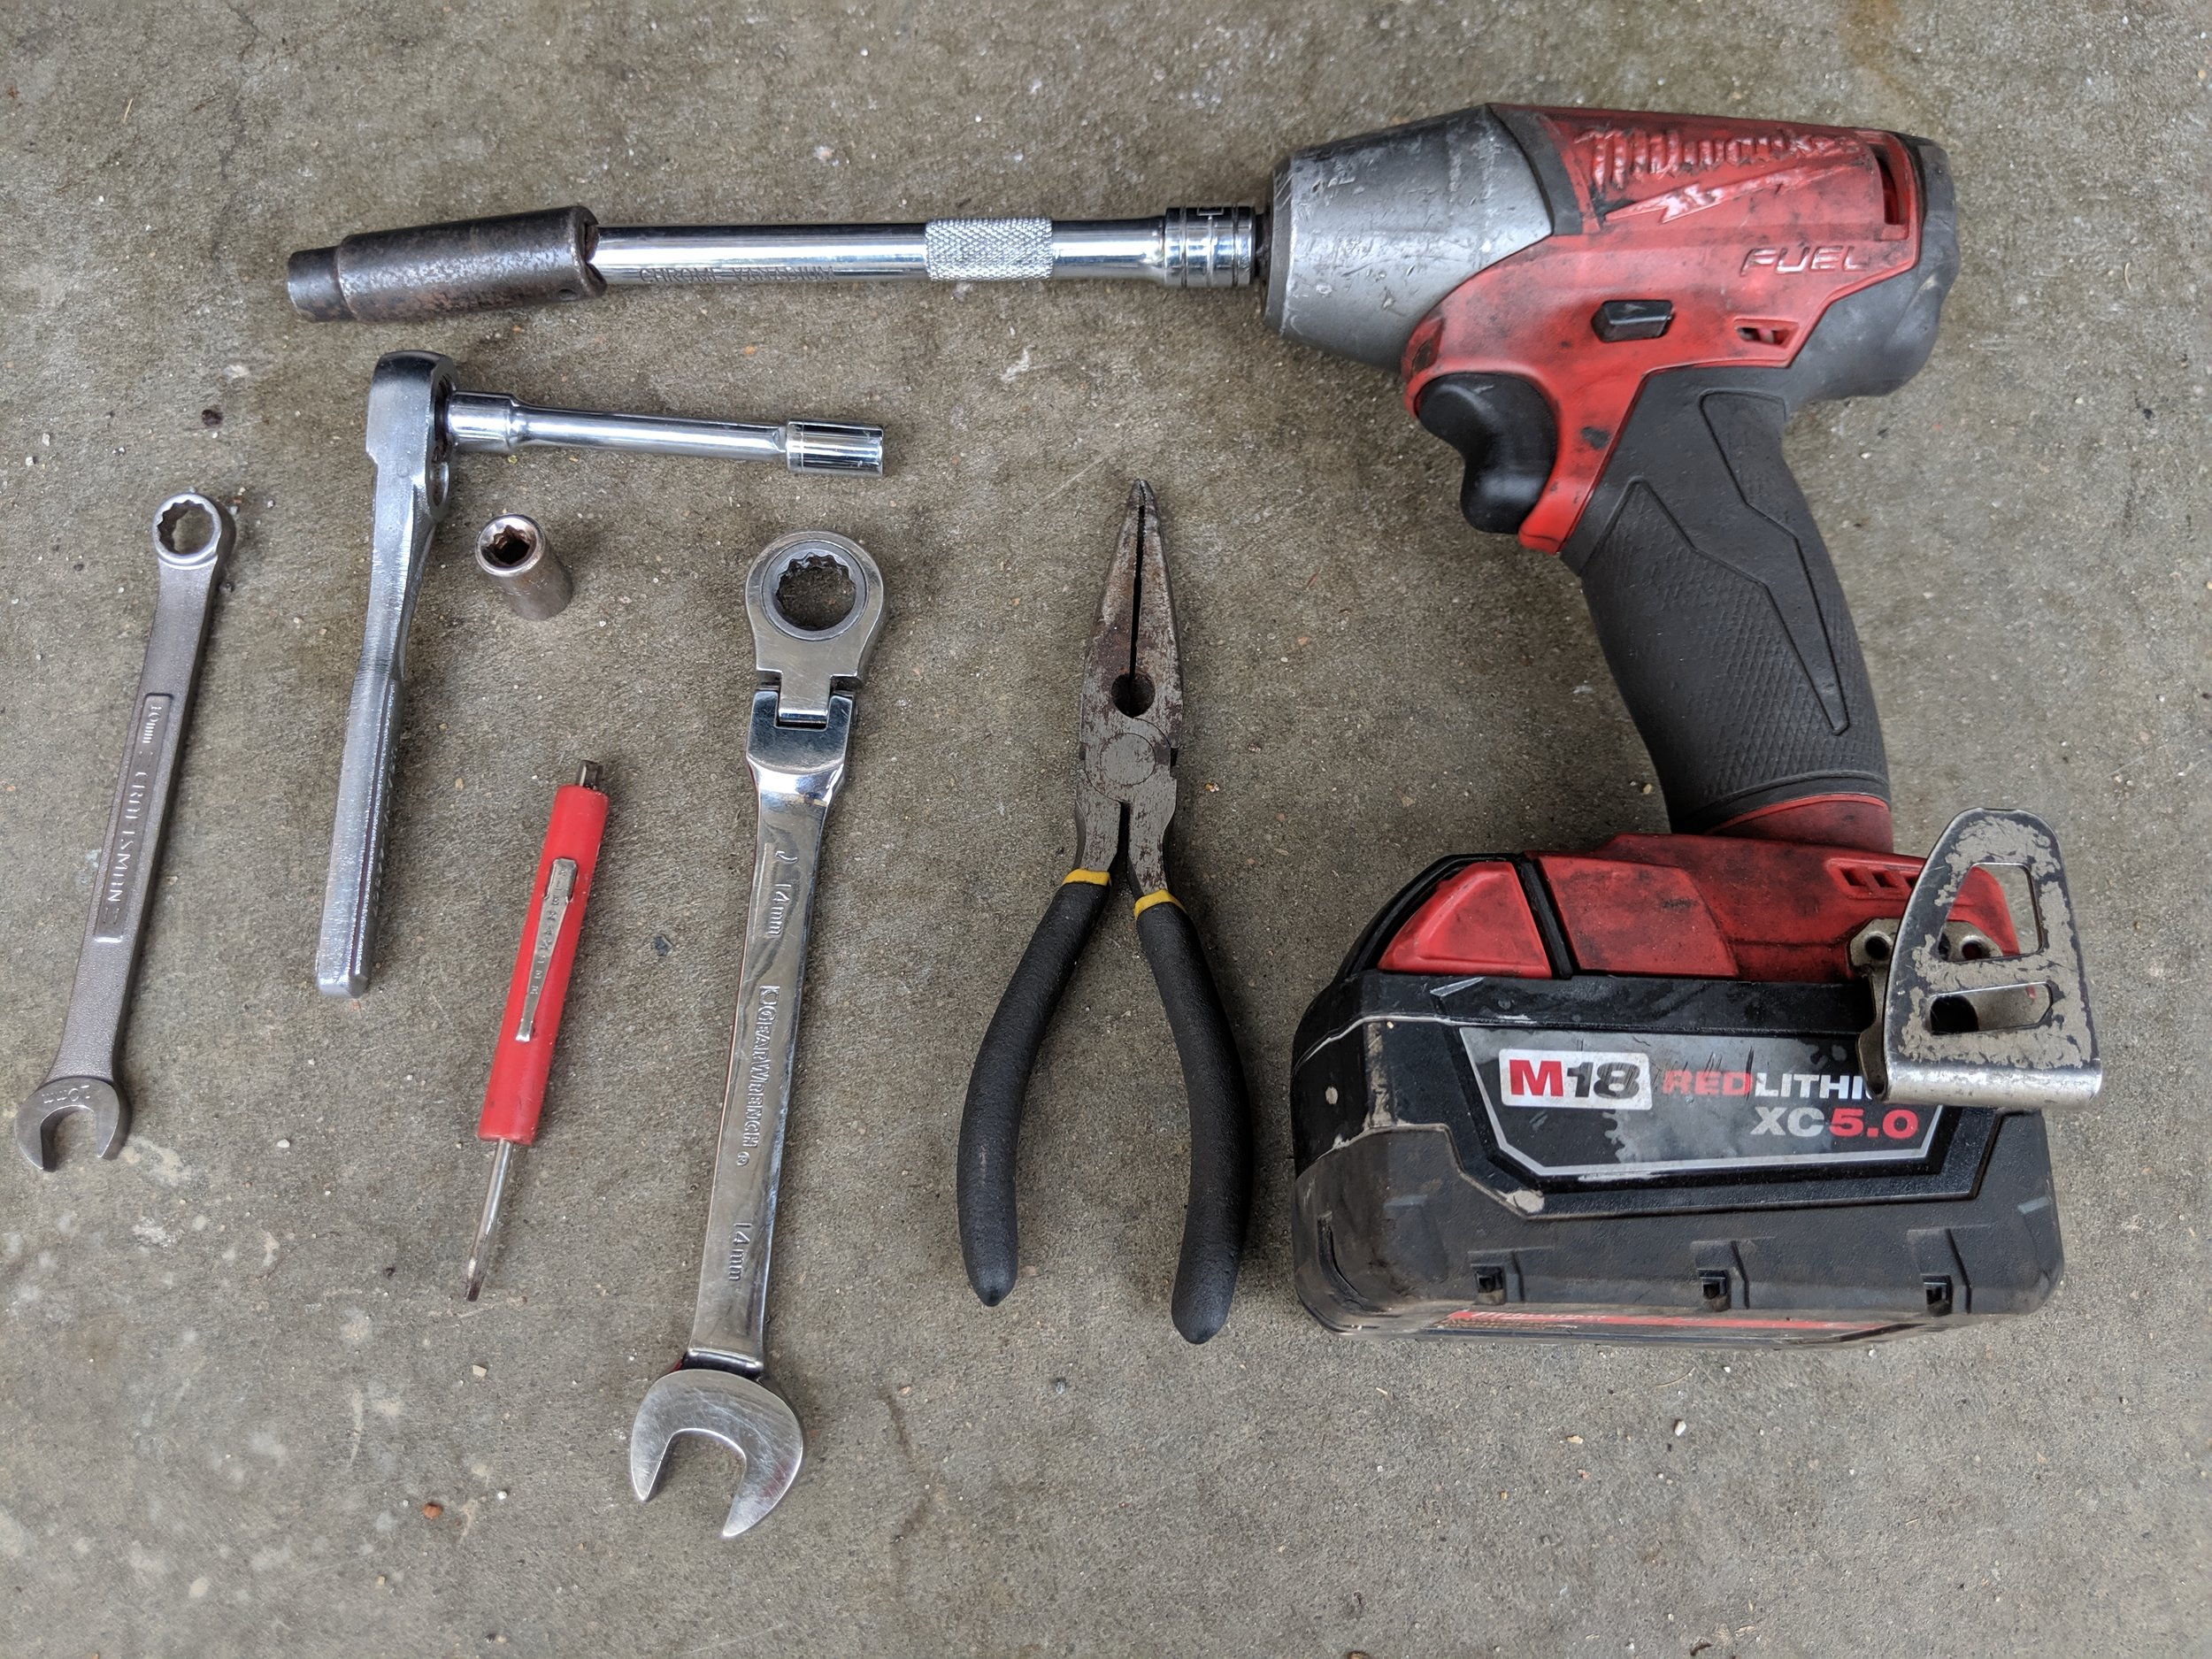 What tools do you need! These are the assorted tools that help me complete the job! An 8mm and 10mm 1/4 socket, with an extension and ratchet. A 10mm and 14mm wrench. A 10mm 3/8th socket and ratchet or impact in my case. A pair of pliers and pocket screwdriver can be helpful.  Links!  3/8th ratchet   Milwaukee 3/8 electric ratchet   Grey pneumatic socket set    Milwaukee 3/8 electric impact   ATE long nose plier set   Craftsman 1/4 socket set and ratchet    Gearwrench 14mm ratcheting wrench